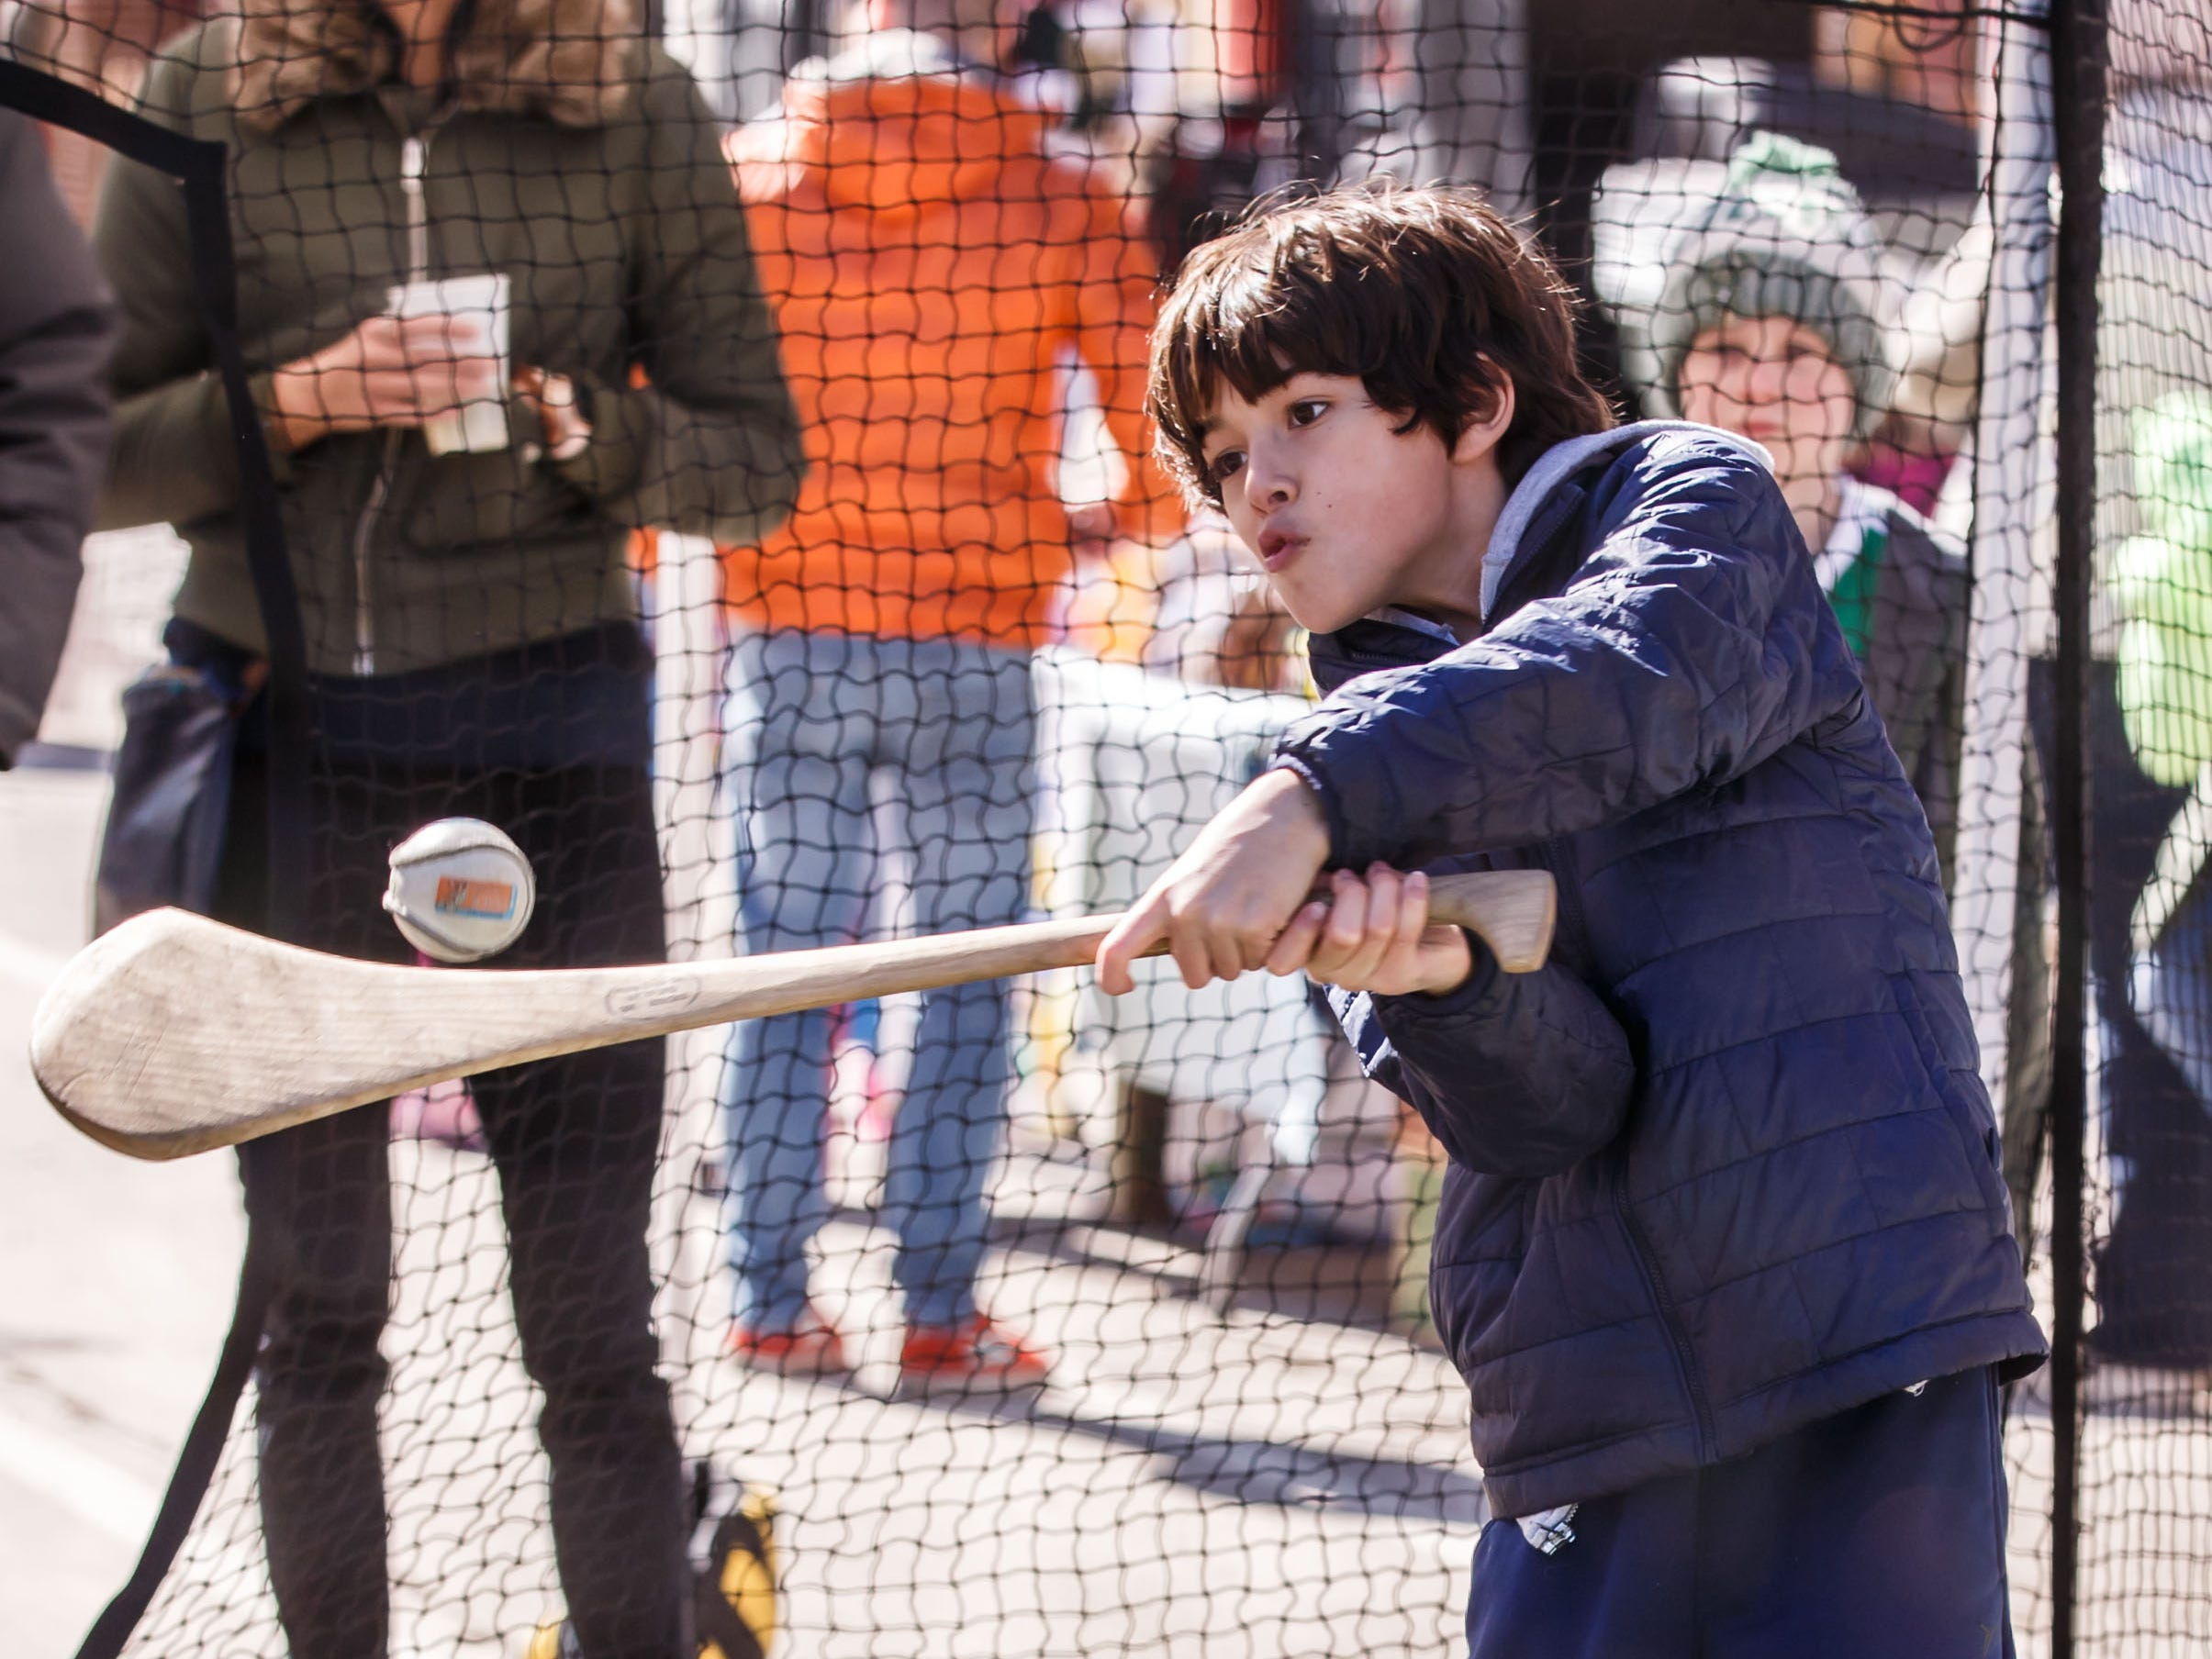 Quinn Bailey, 9, of Shorewood tries the game of Hurling at the Milwaukee Hurling Club booth during the Shorewood Shenanigans street festival on Saturday, March 16, 2019. The annual event features live music, food and drink, games, vendors and more. Nine bars and restaurants along N. Oakland Ave. participate in the fun.